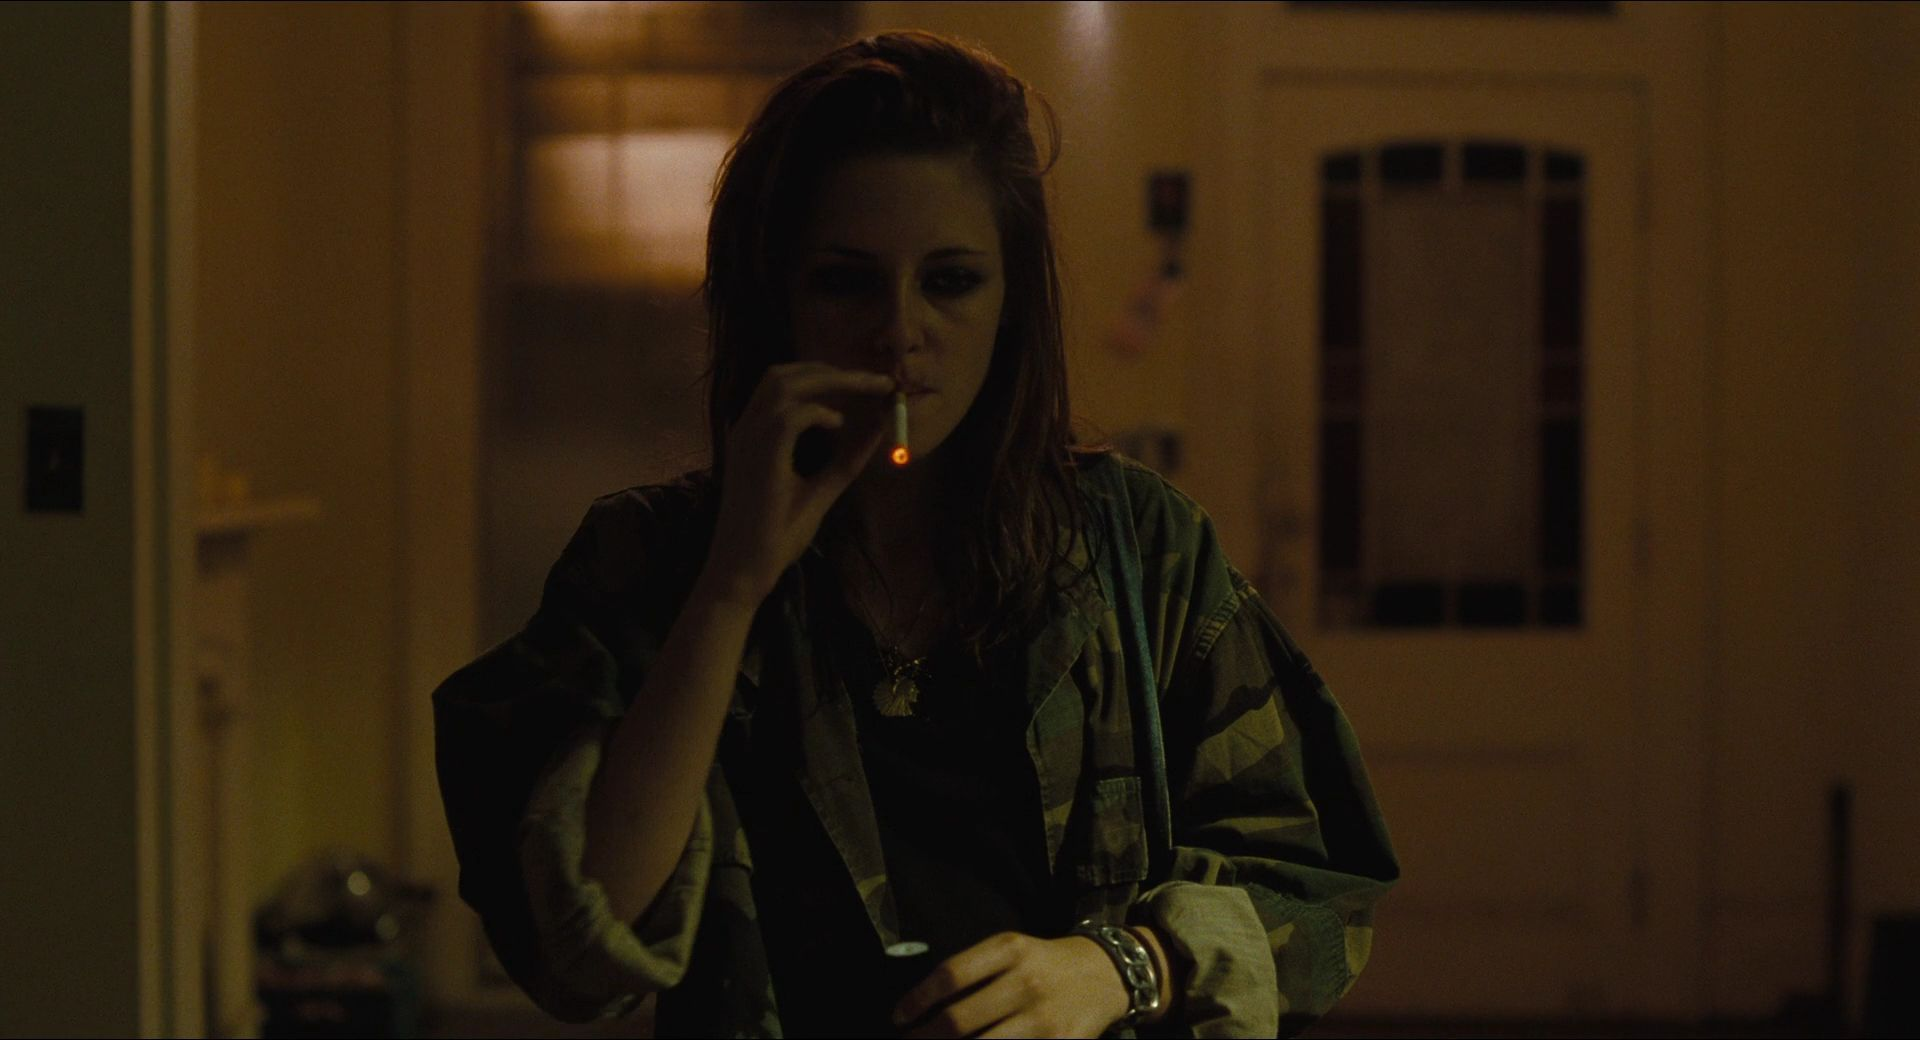 image Kristen stewart welcome to the rileys